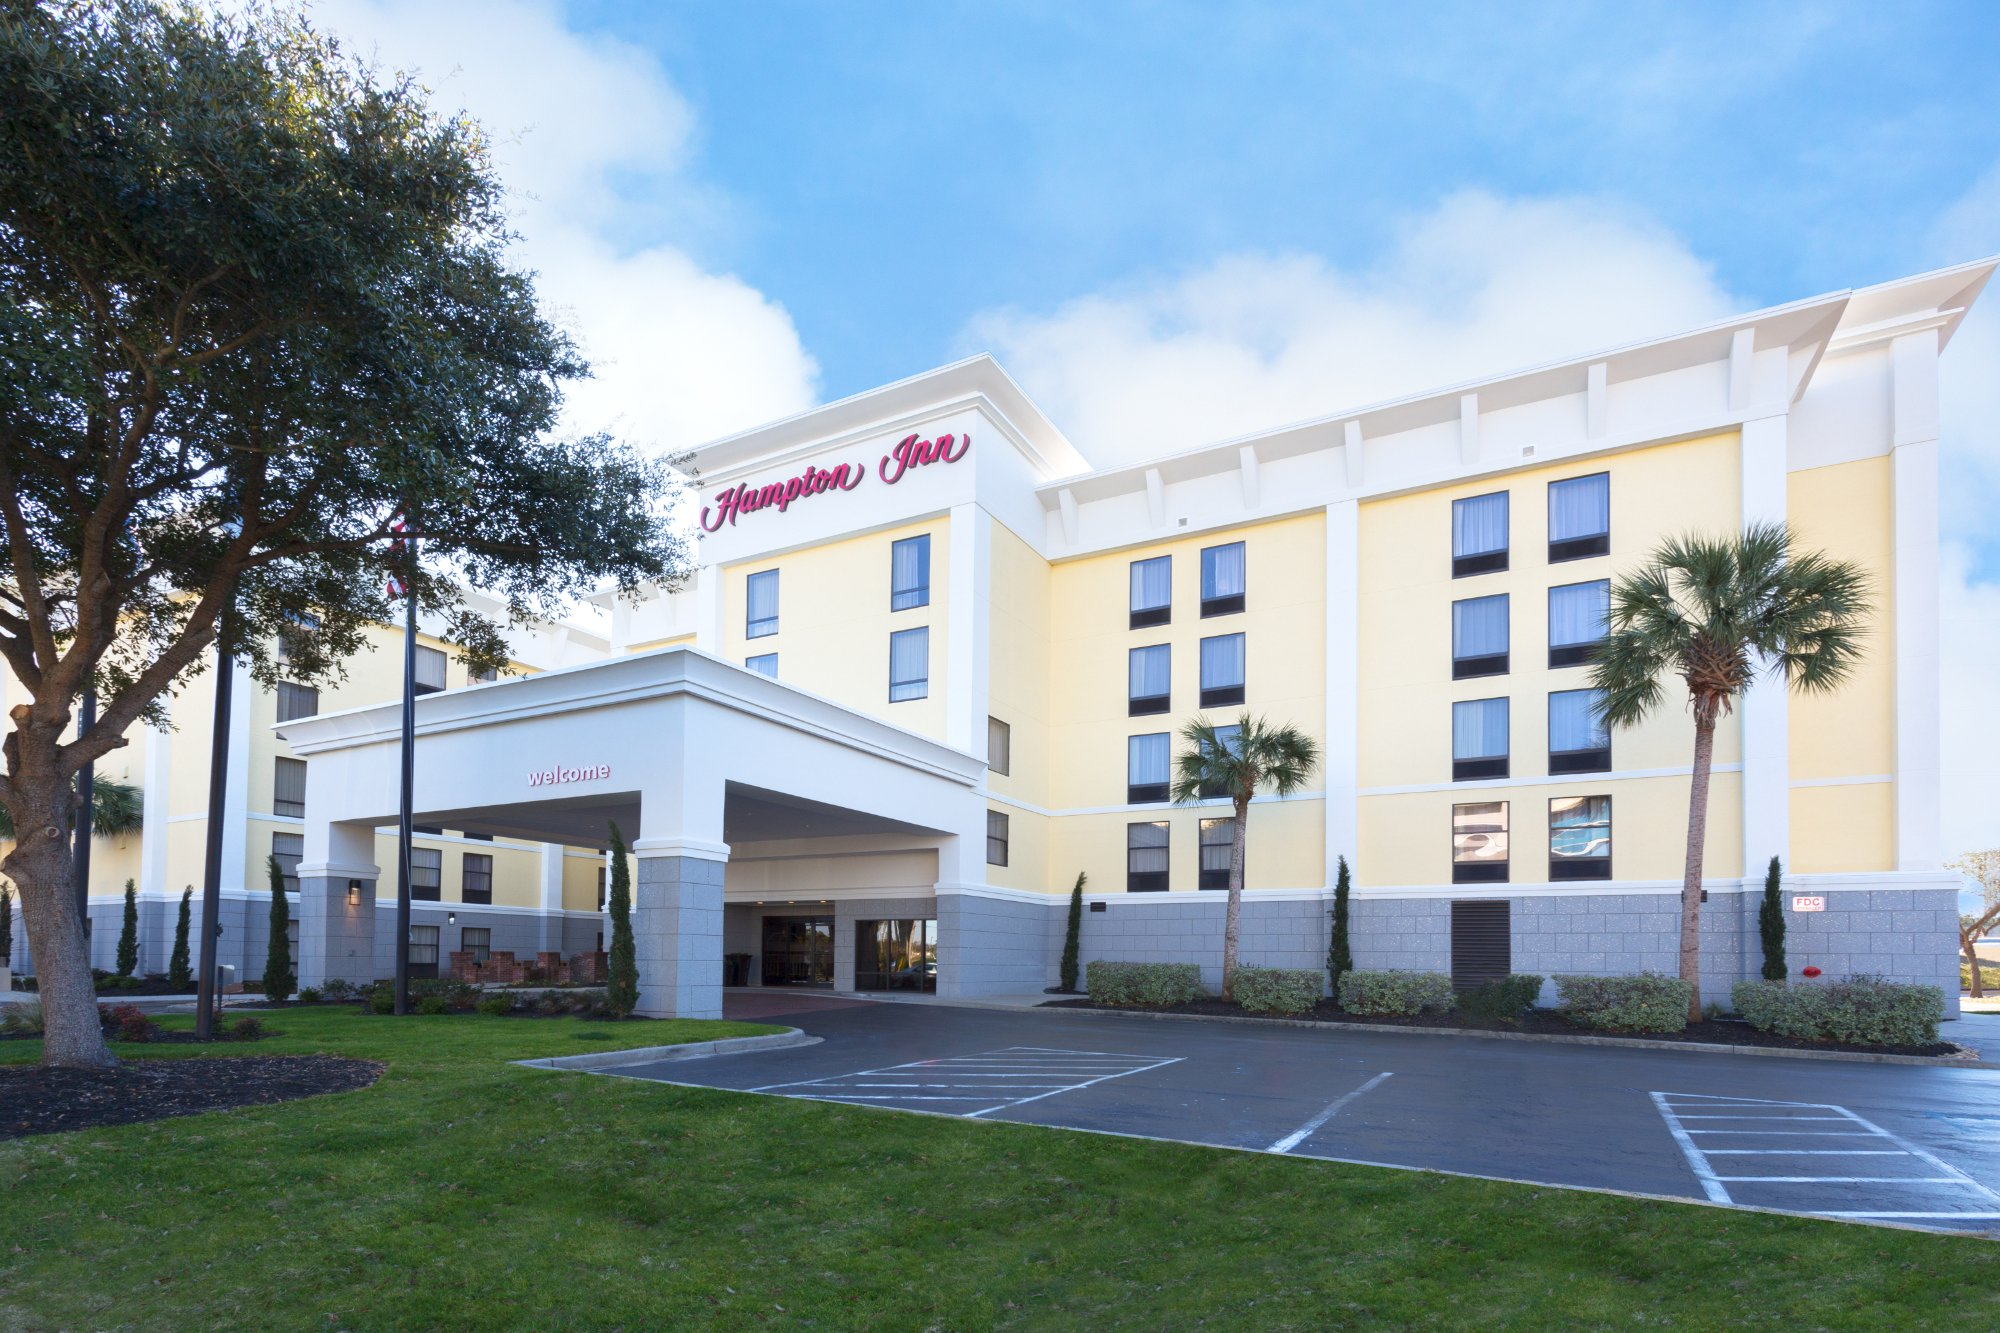 Hampton Inn North Myrtle Beach Harbourgate Updated